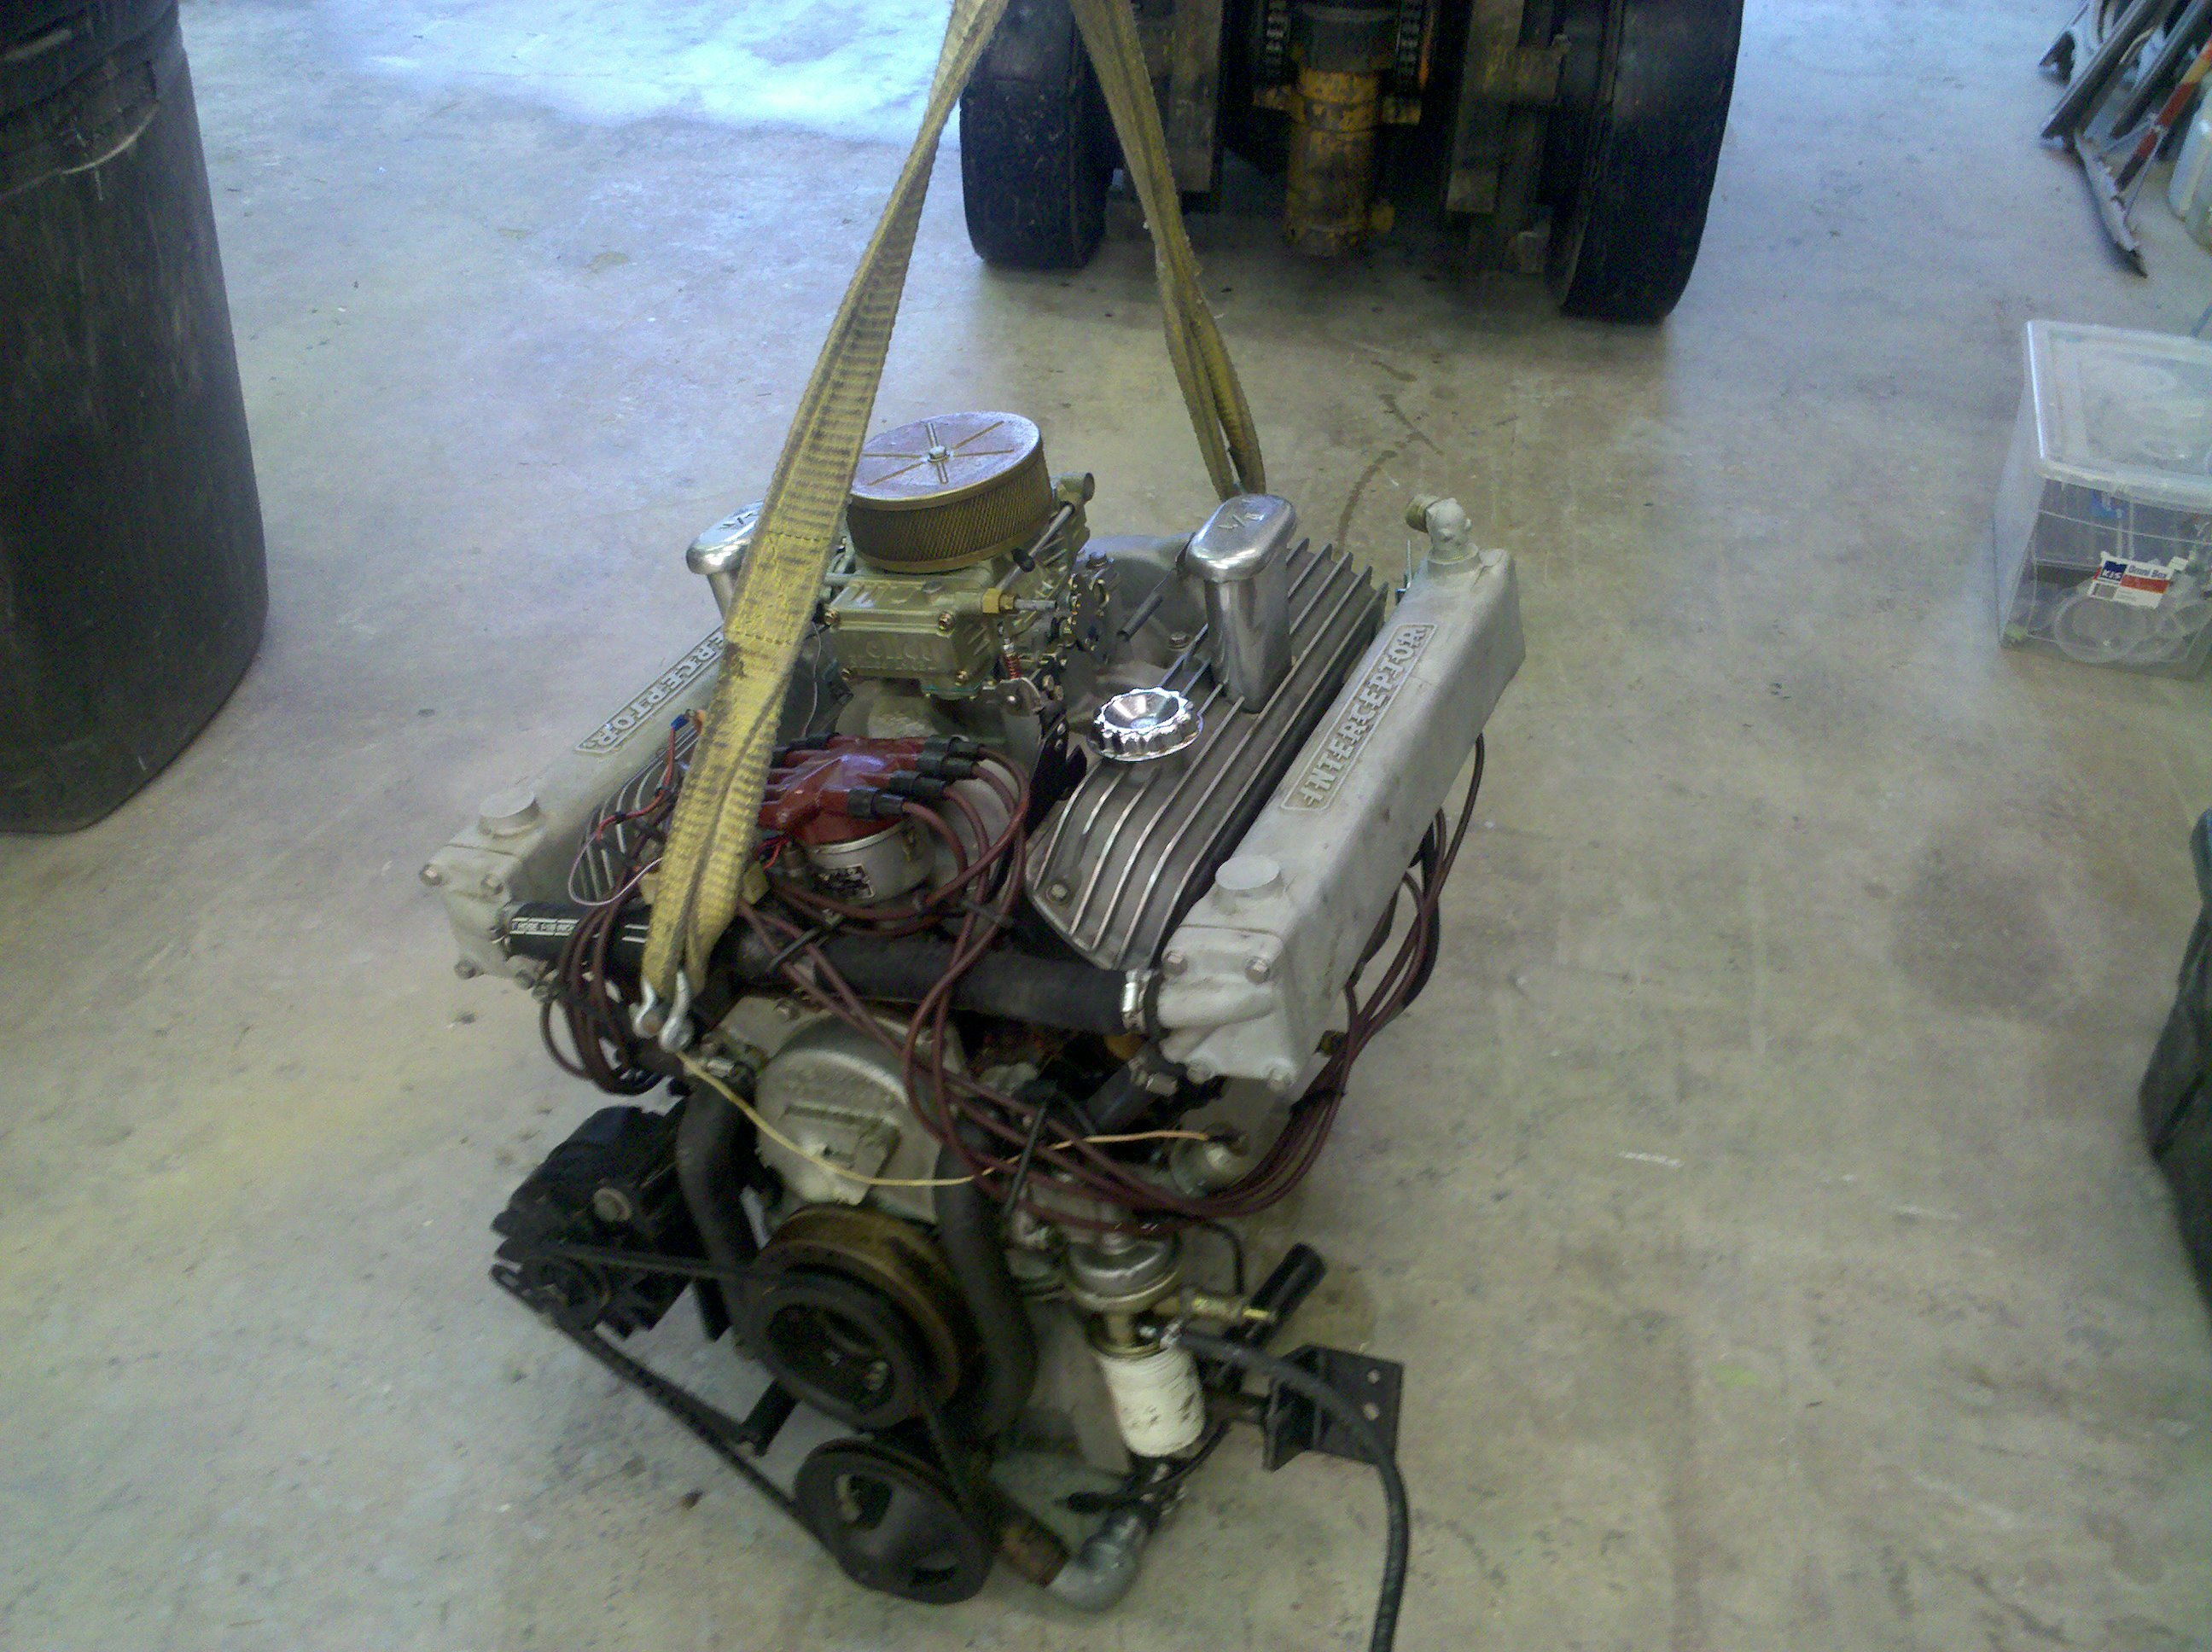 1965 Mustang 289 vs 289 HiPo engine?-engine-out.jpg